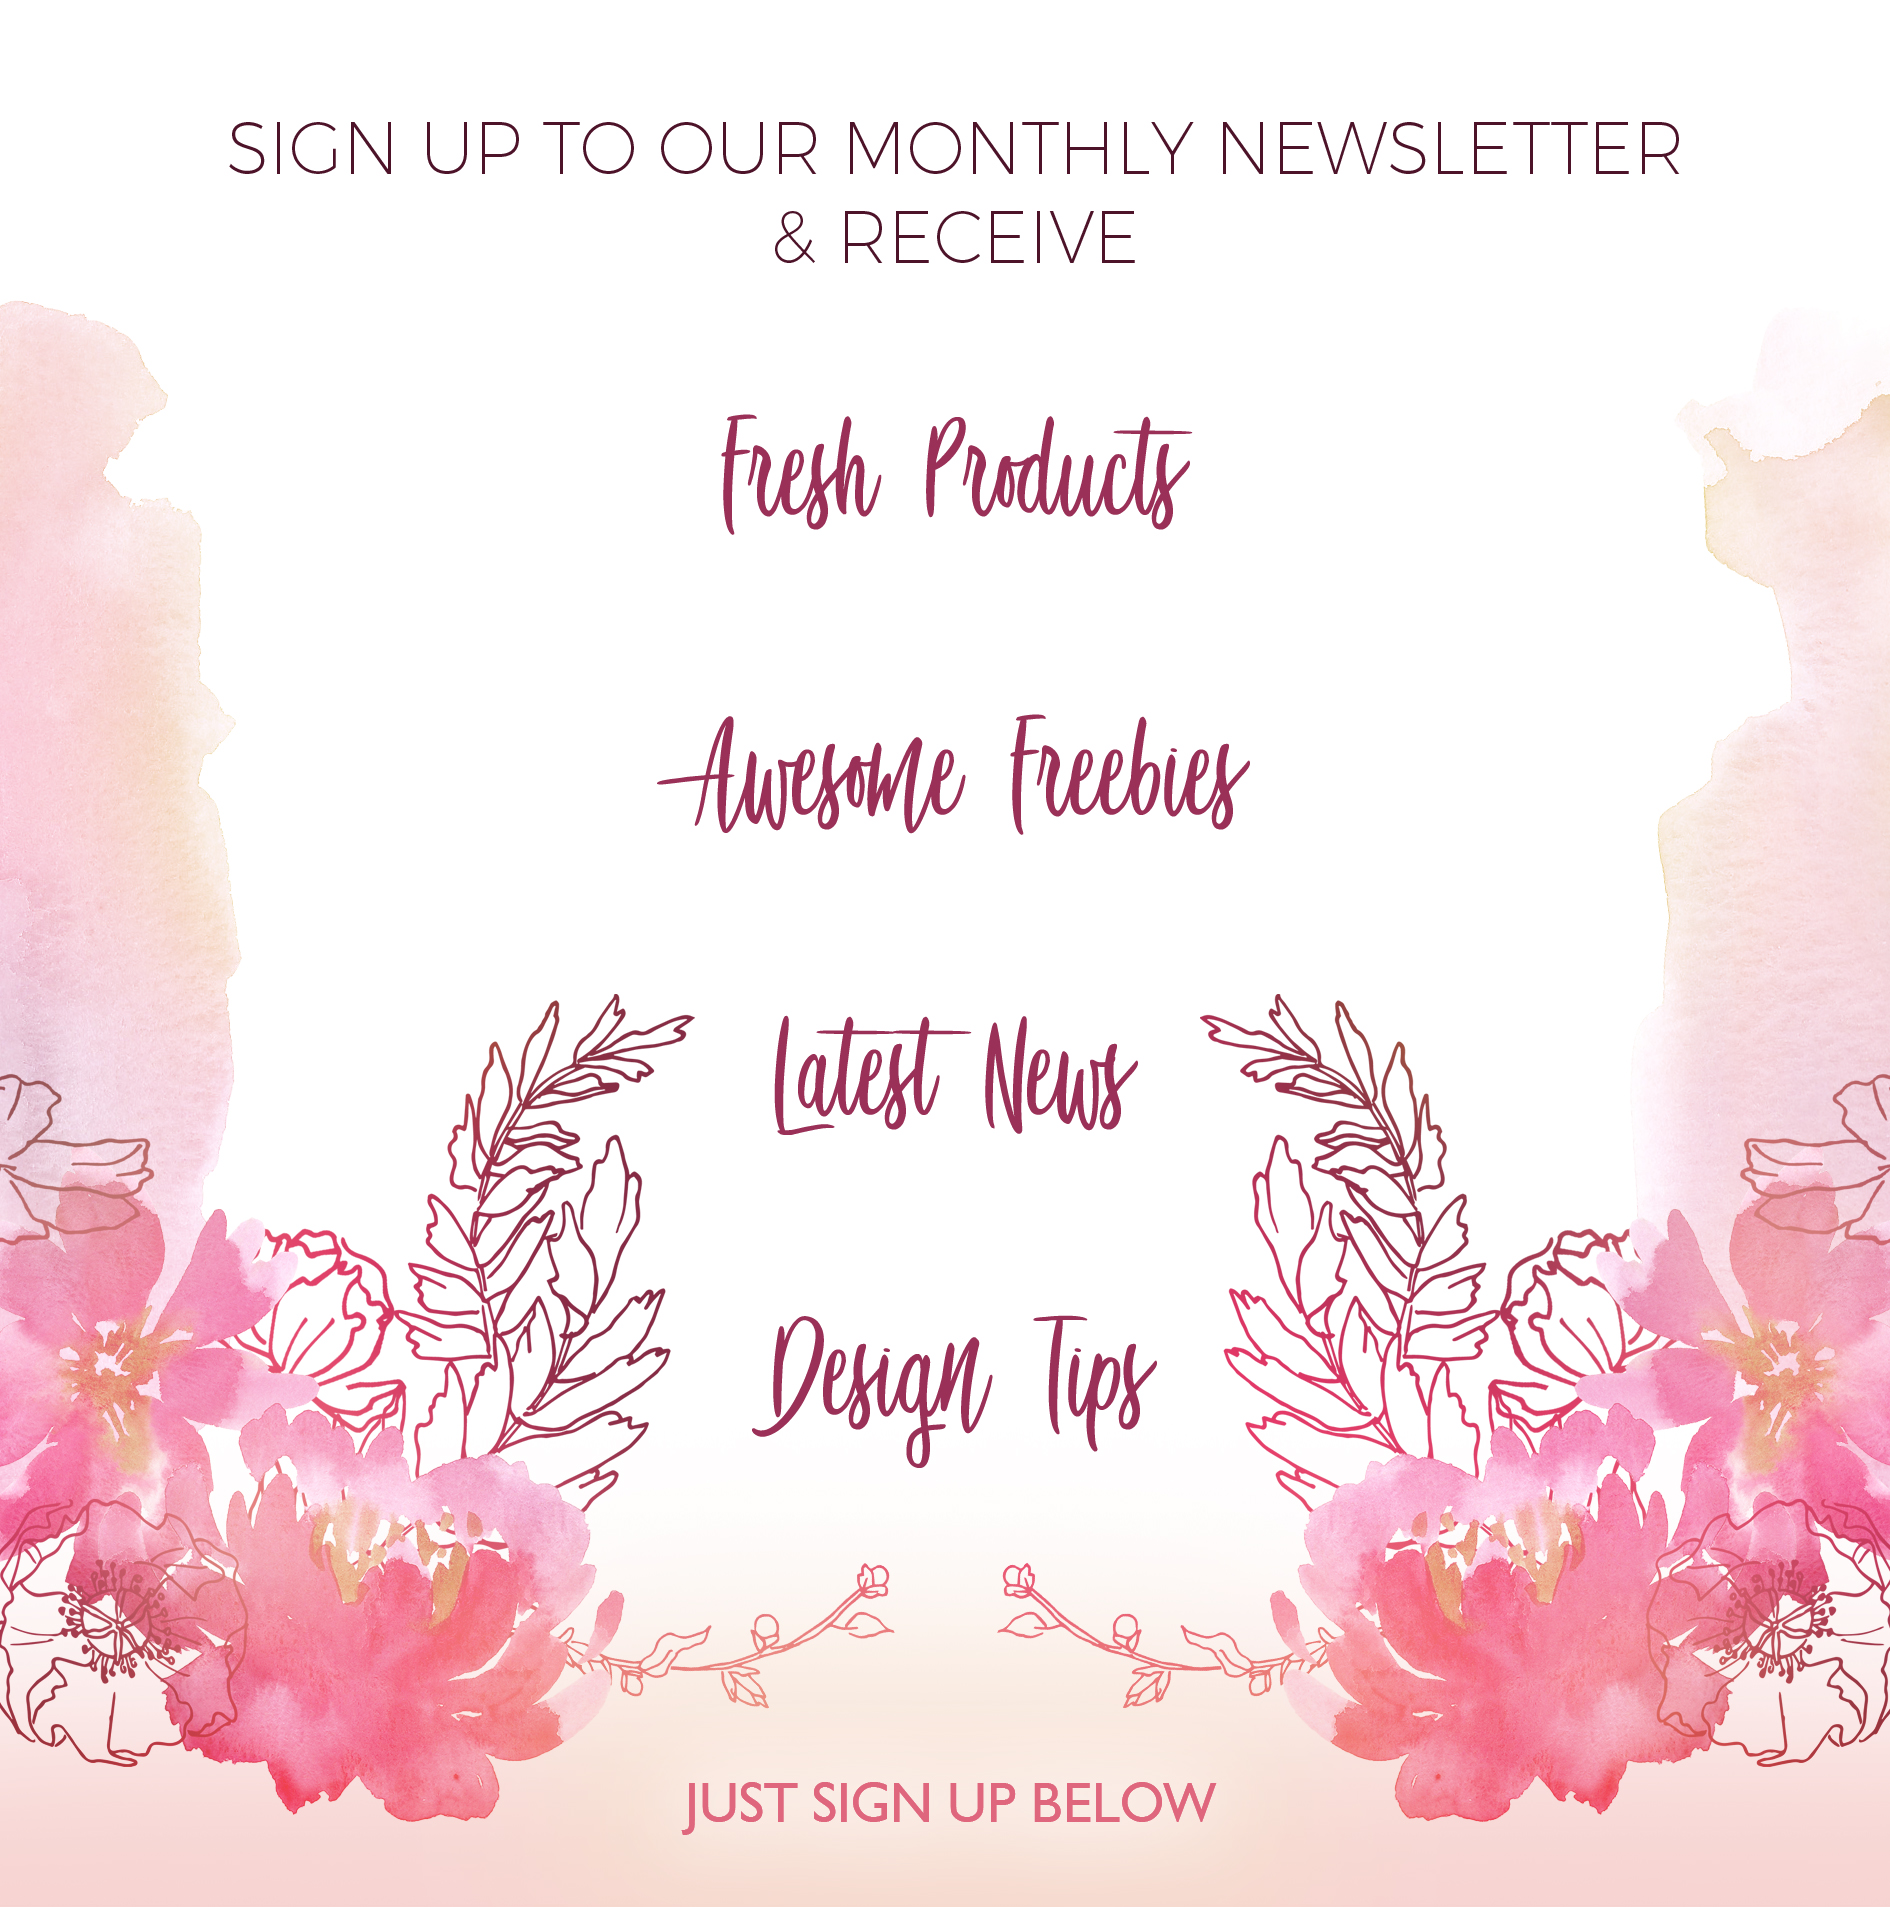 Sign up to our monthly newsletter & receive our freshest products, awesome Freebies, latest news and design tips.